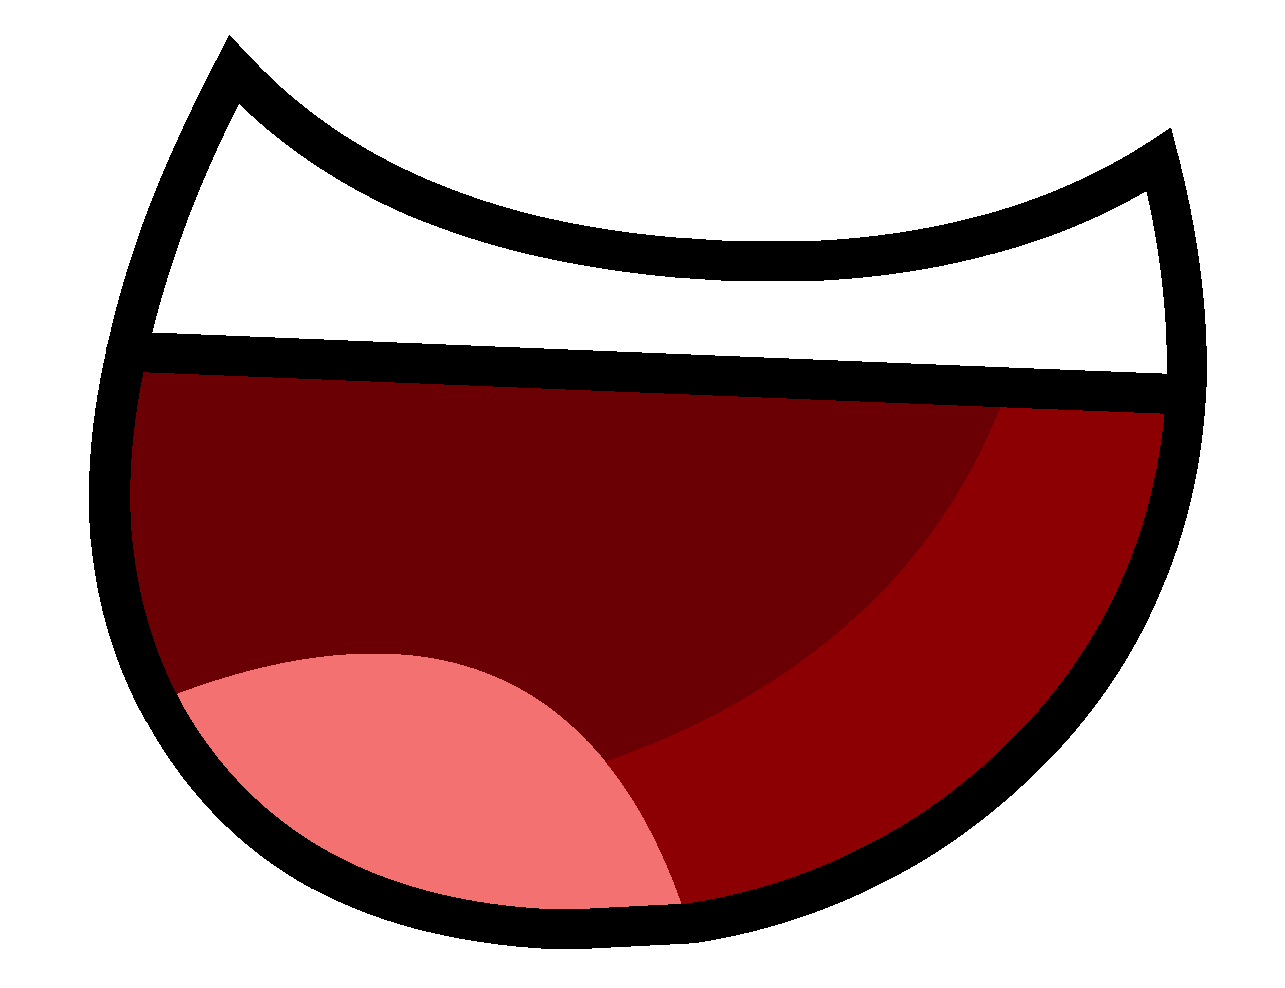 Smile Lips Clipart - Smile Lips PNG - Smiling Lips PNG HD